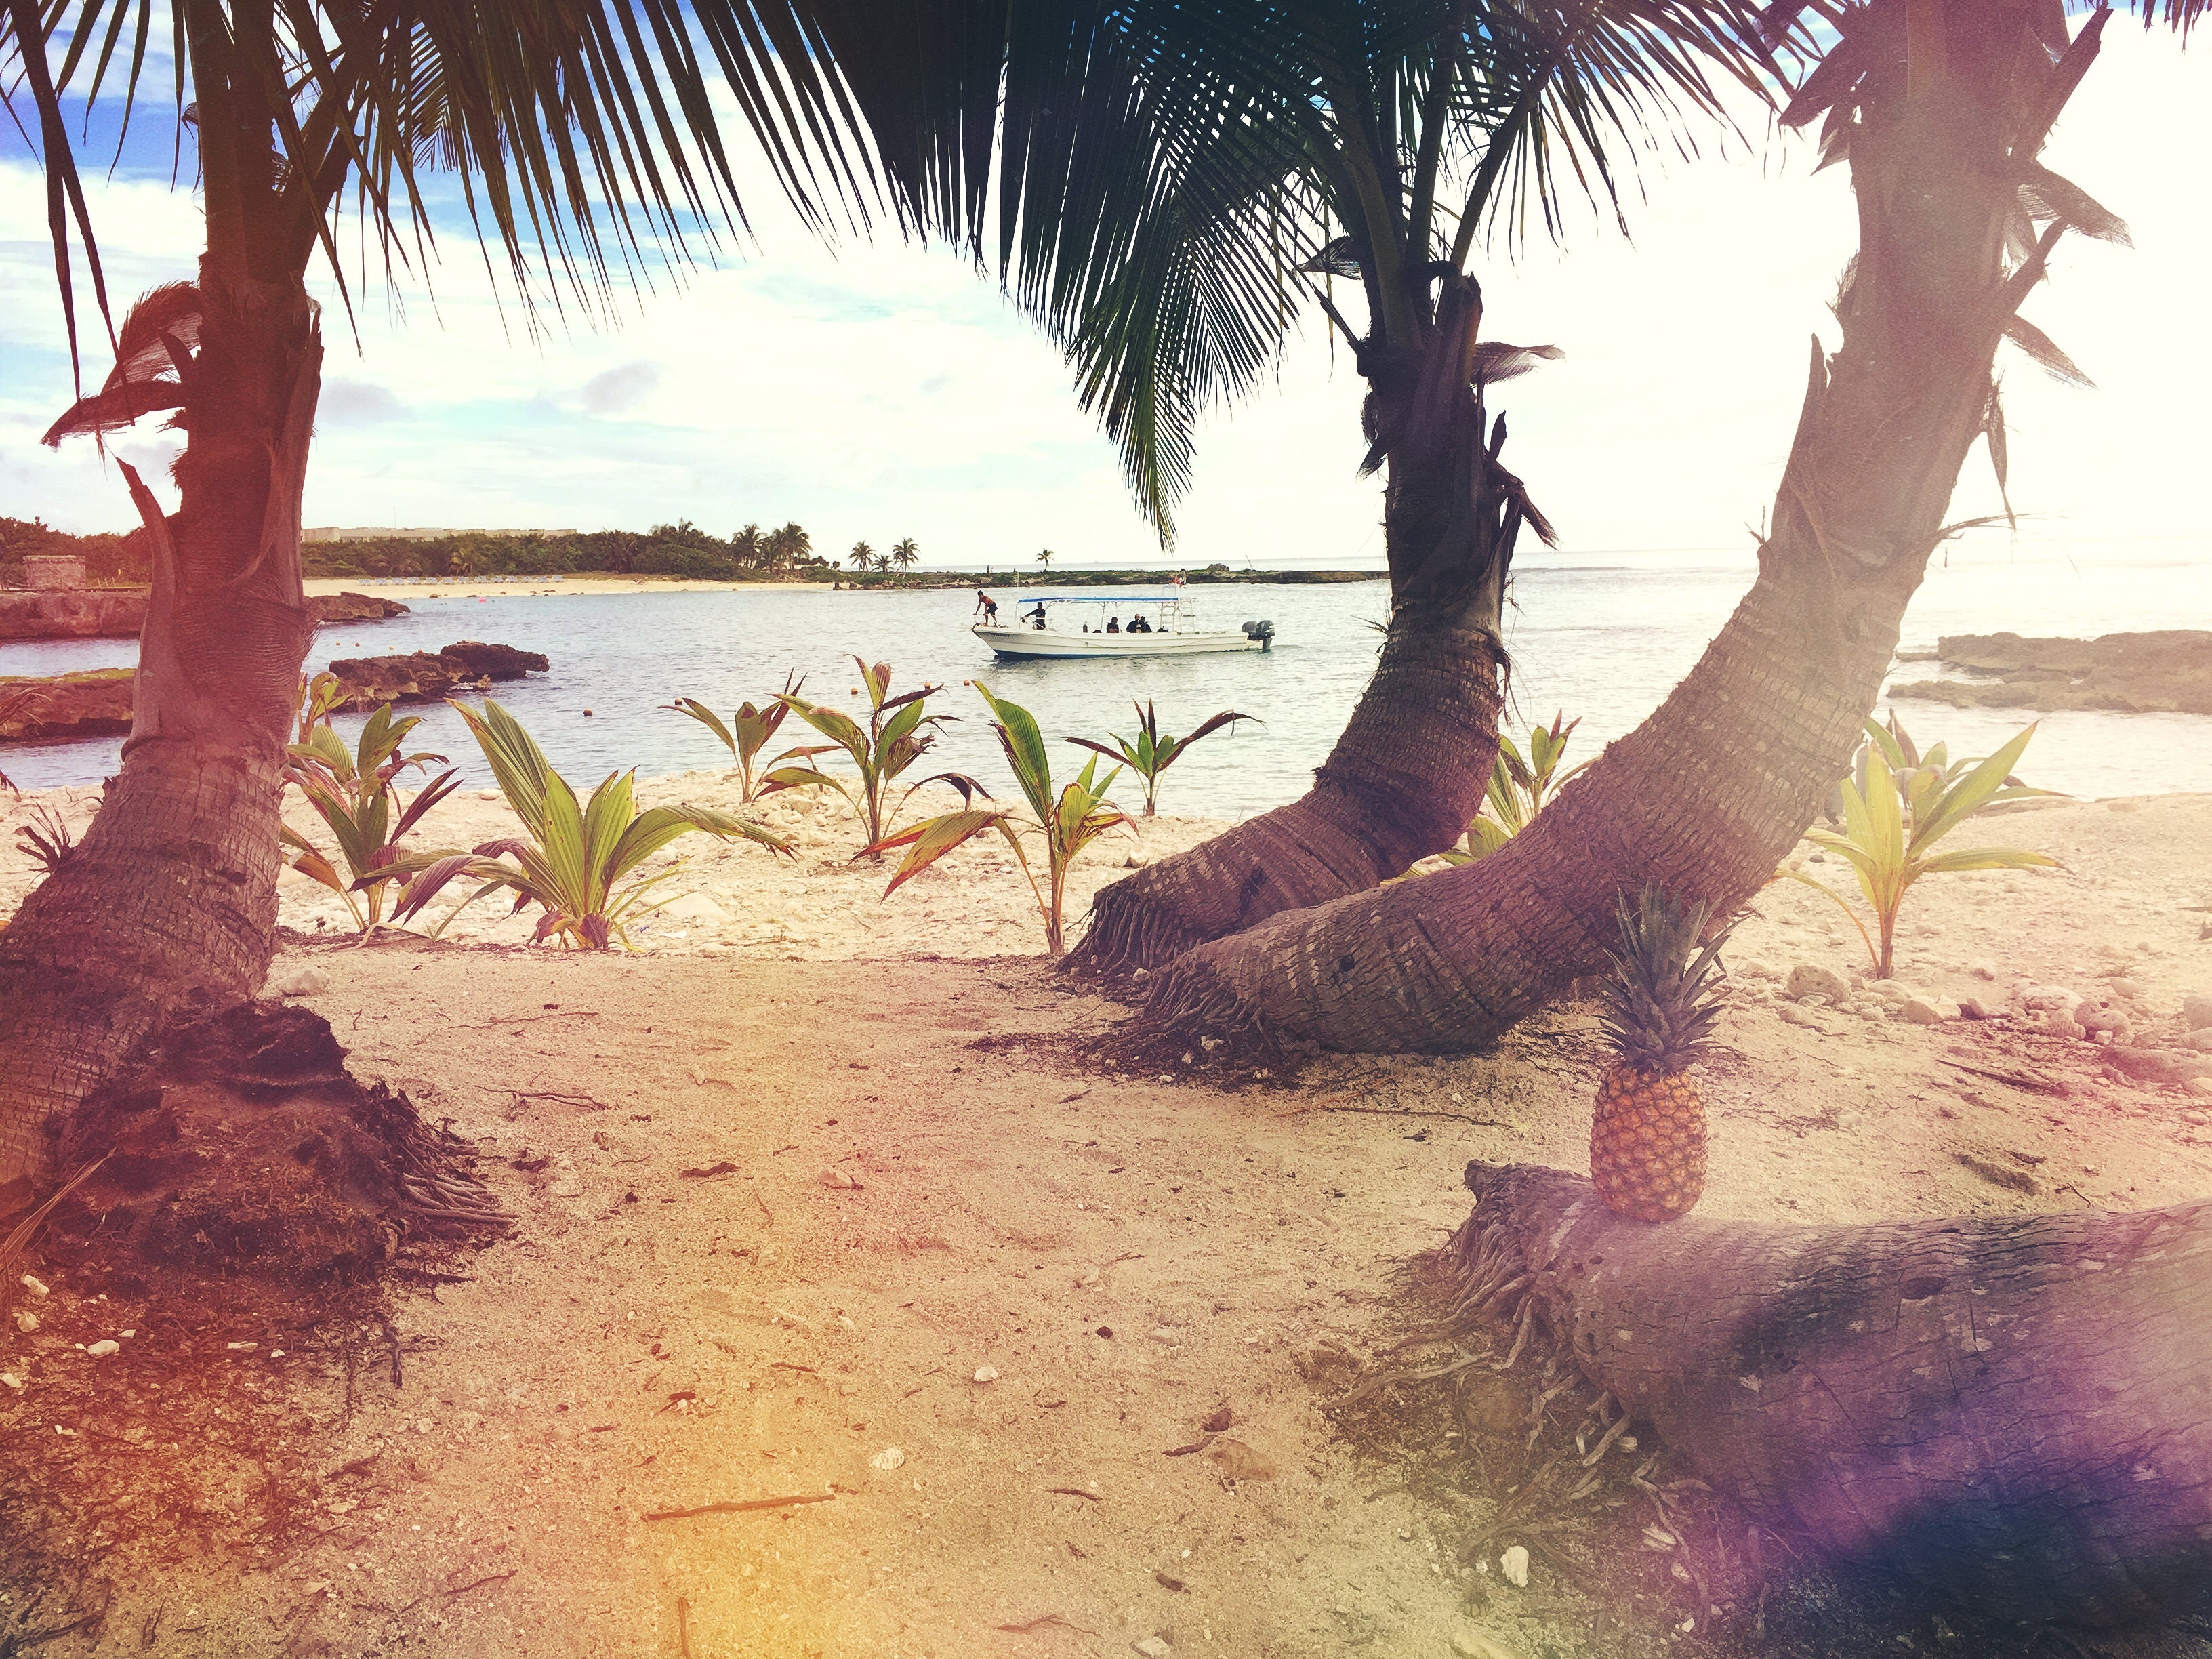 3 Coconut Trees Near the Beach Shore Line during Day Time, Beach, Resort, Vacation, Tropical, HQ Photo